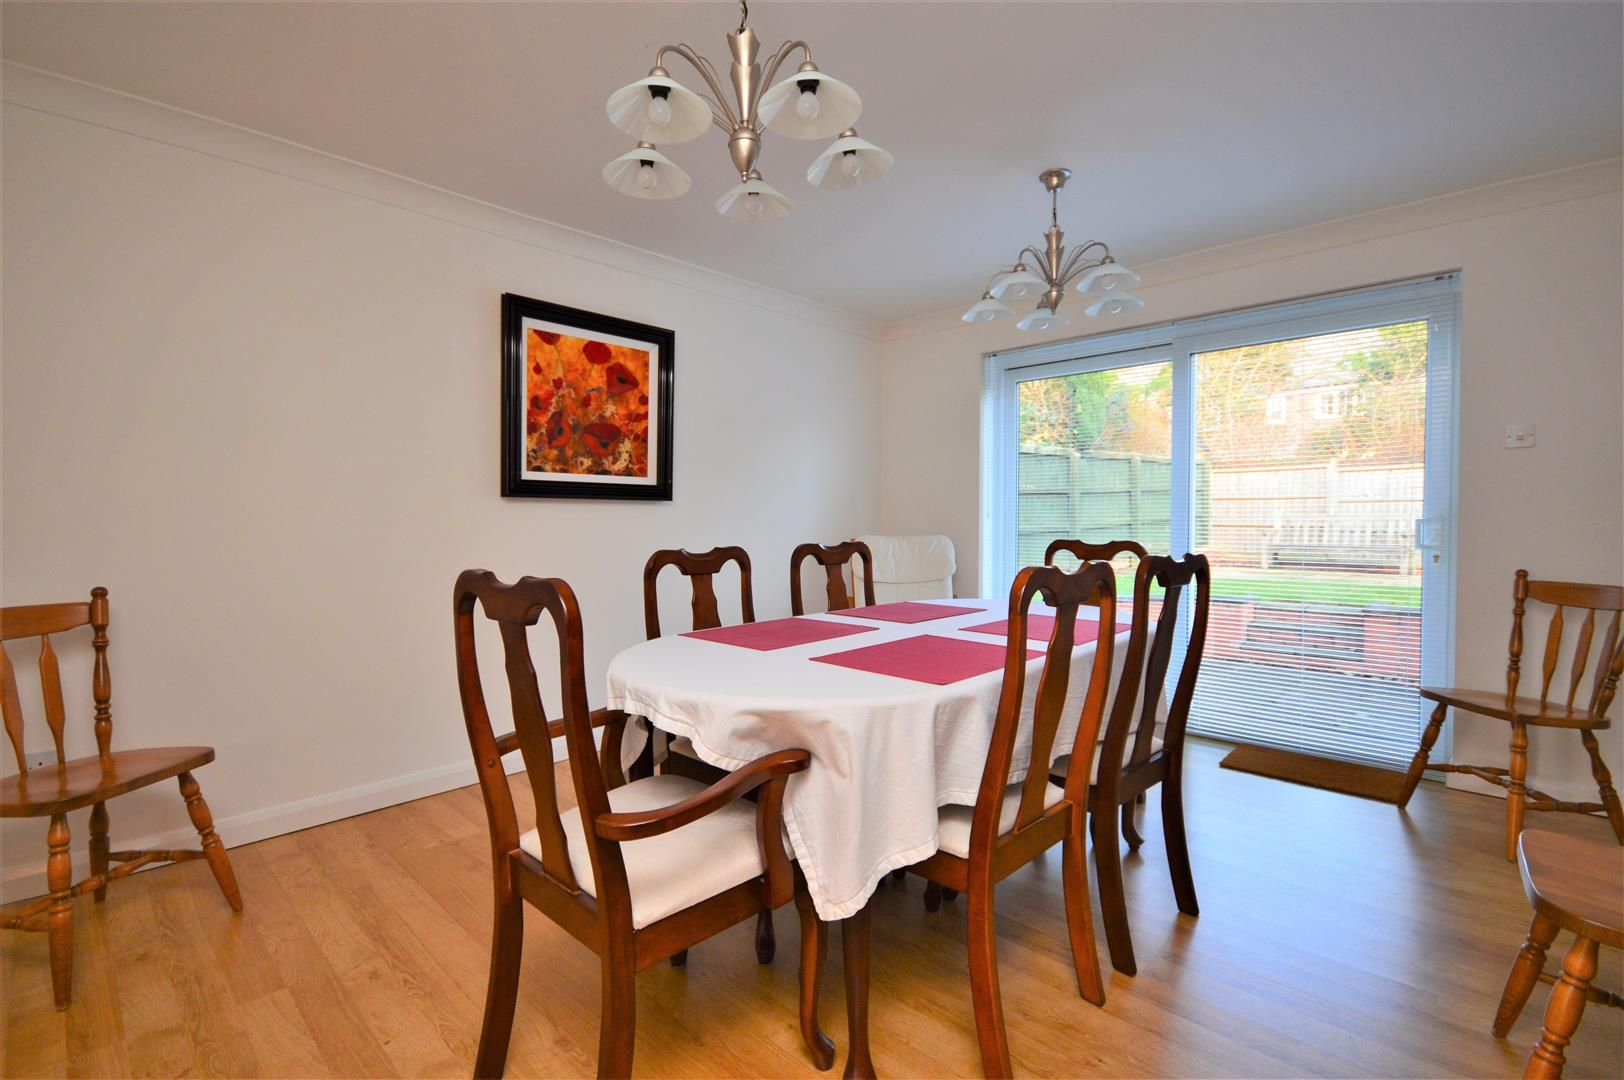 4 bed detached for sale in Hereford  - Property Image 4